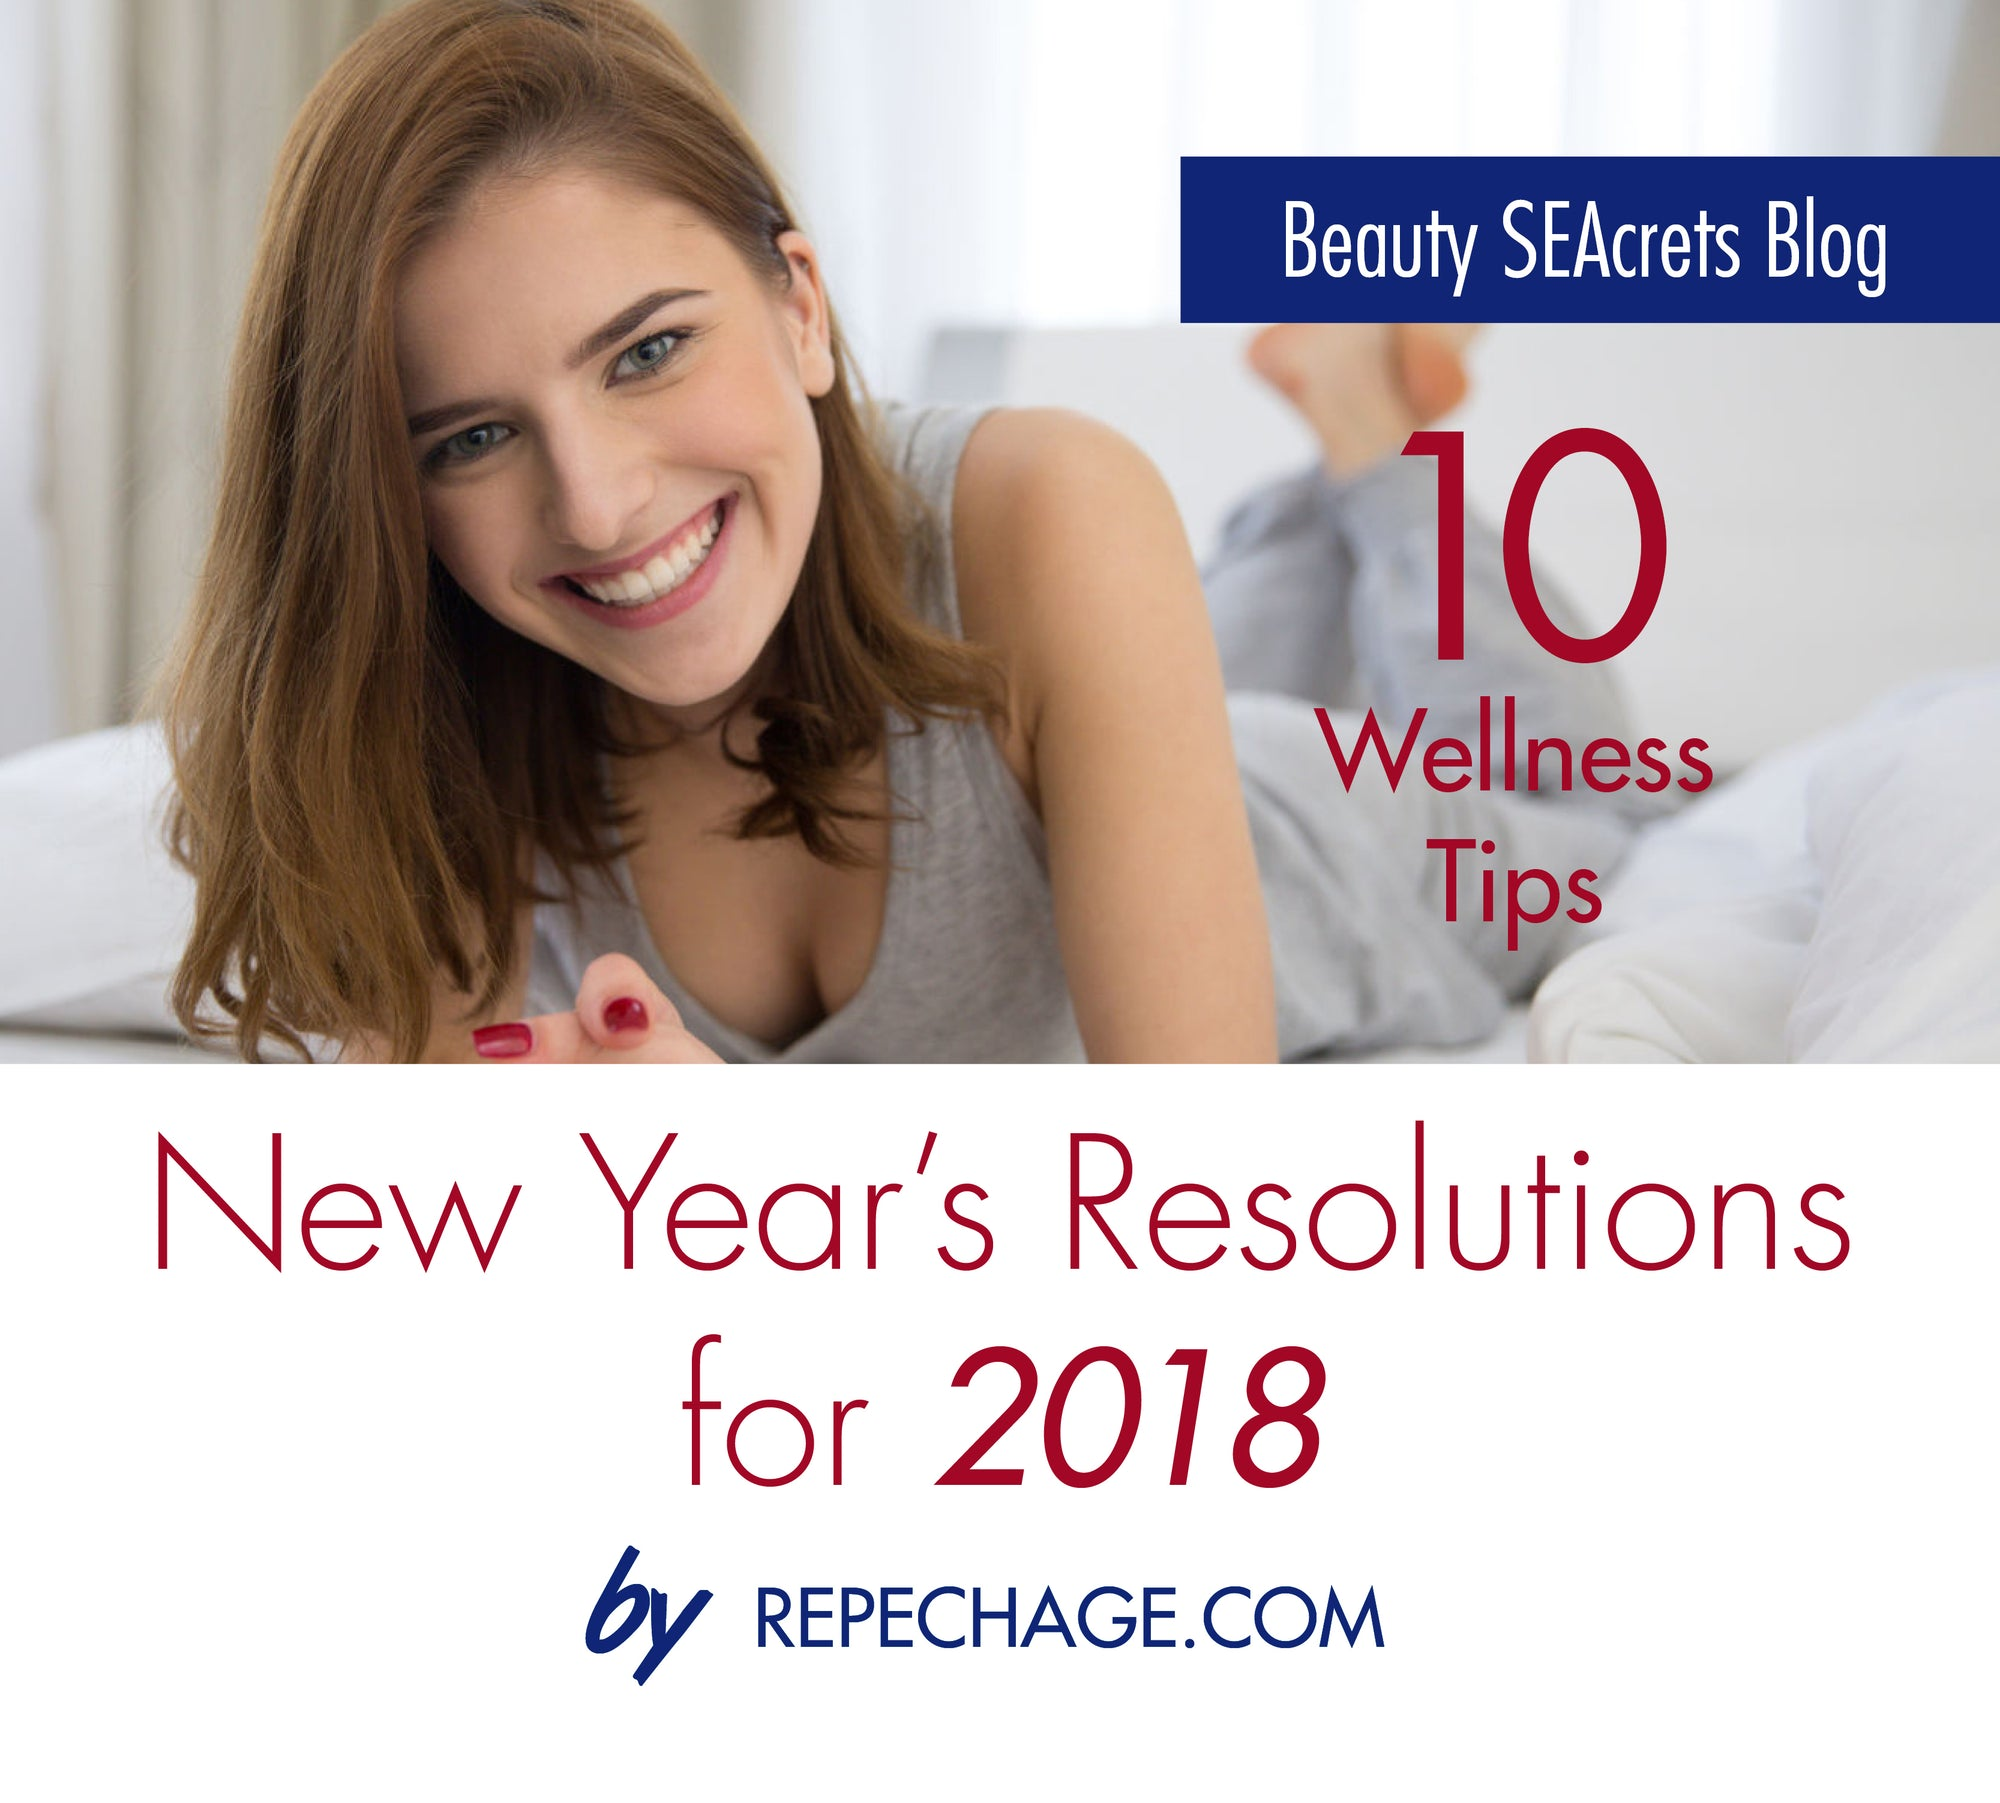 10 Wellness Tips / New Year's Resolutions for 2018